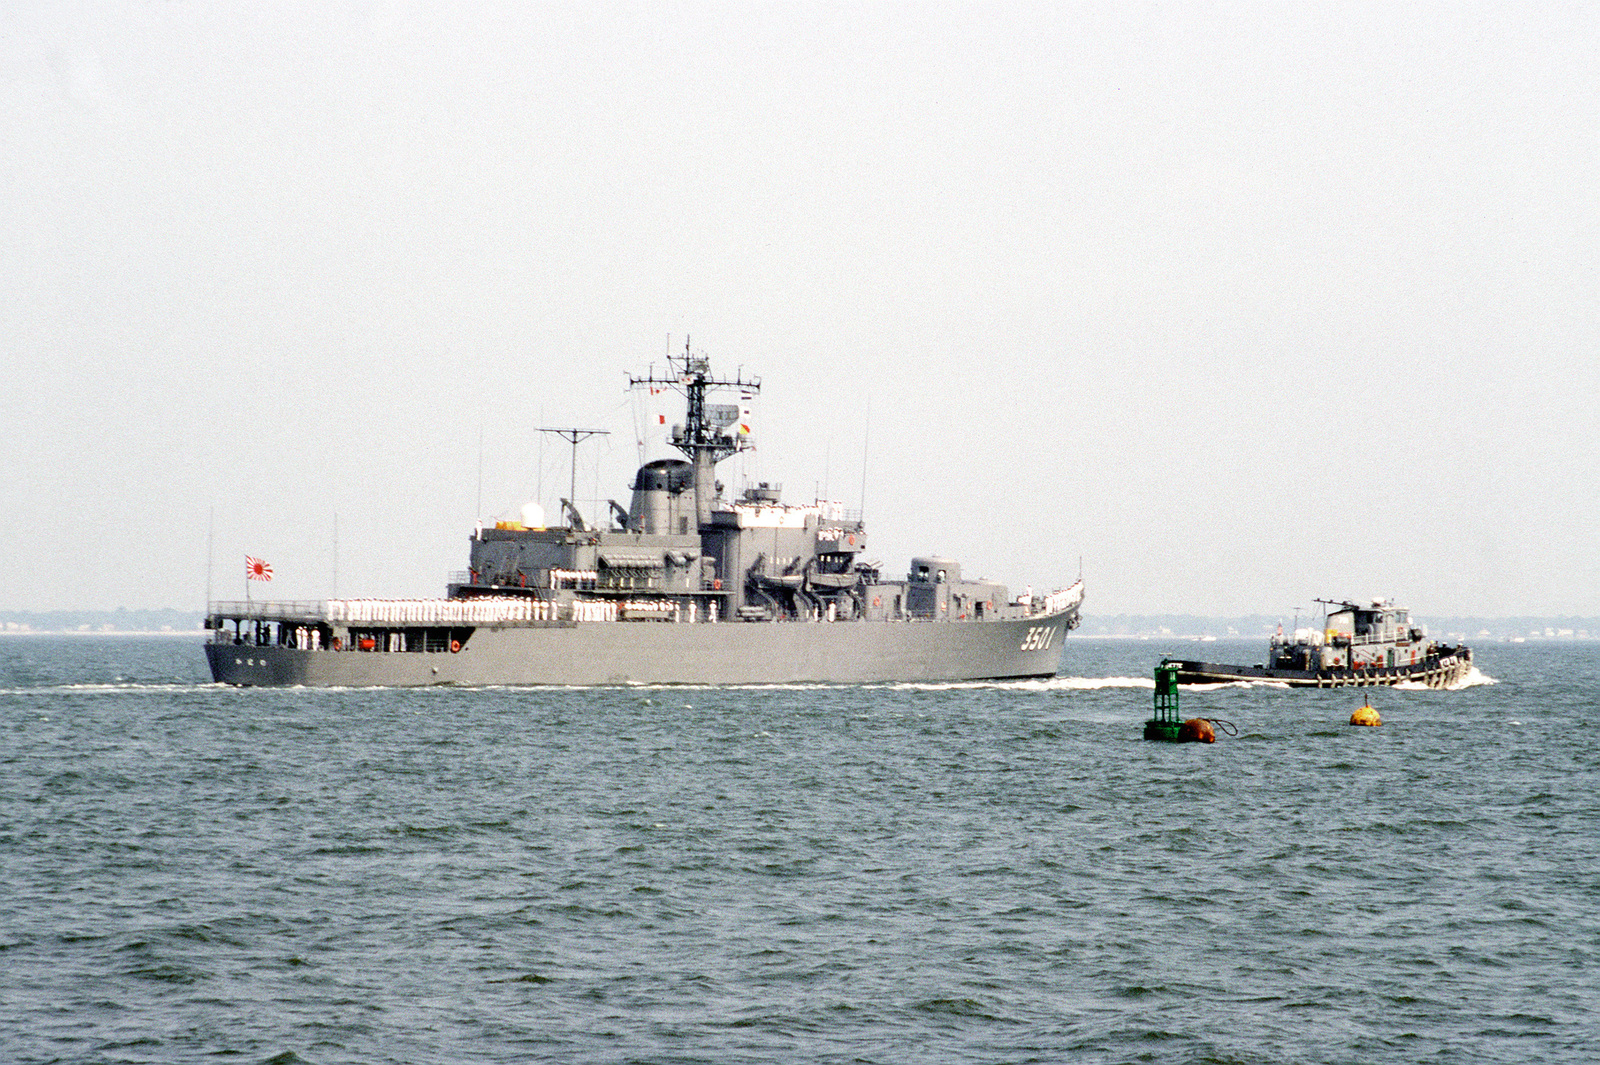 A starboard quarter view of the Japanese training ship KATORI (TV-3501) underway in the harbor. The KATORI, along with other ships from the Japanese Maritime Self-Defense Force, is visiting Naval Operating Base, Norfolk